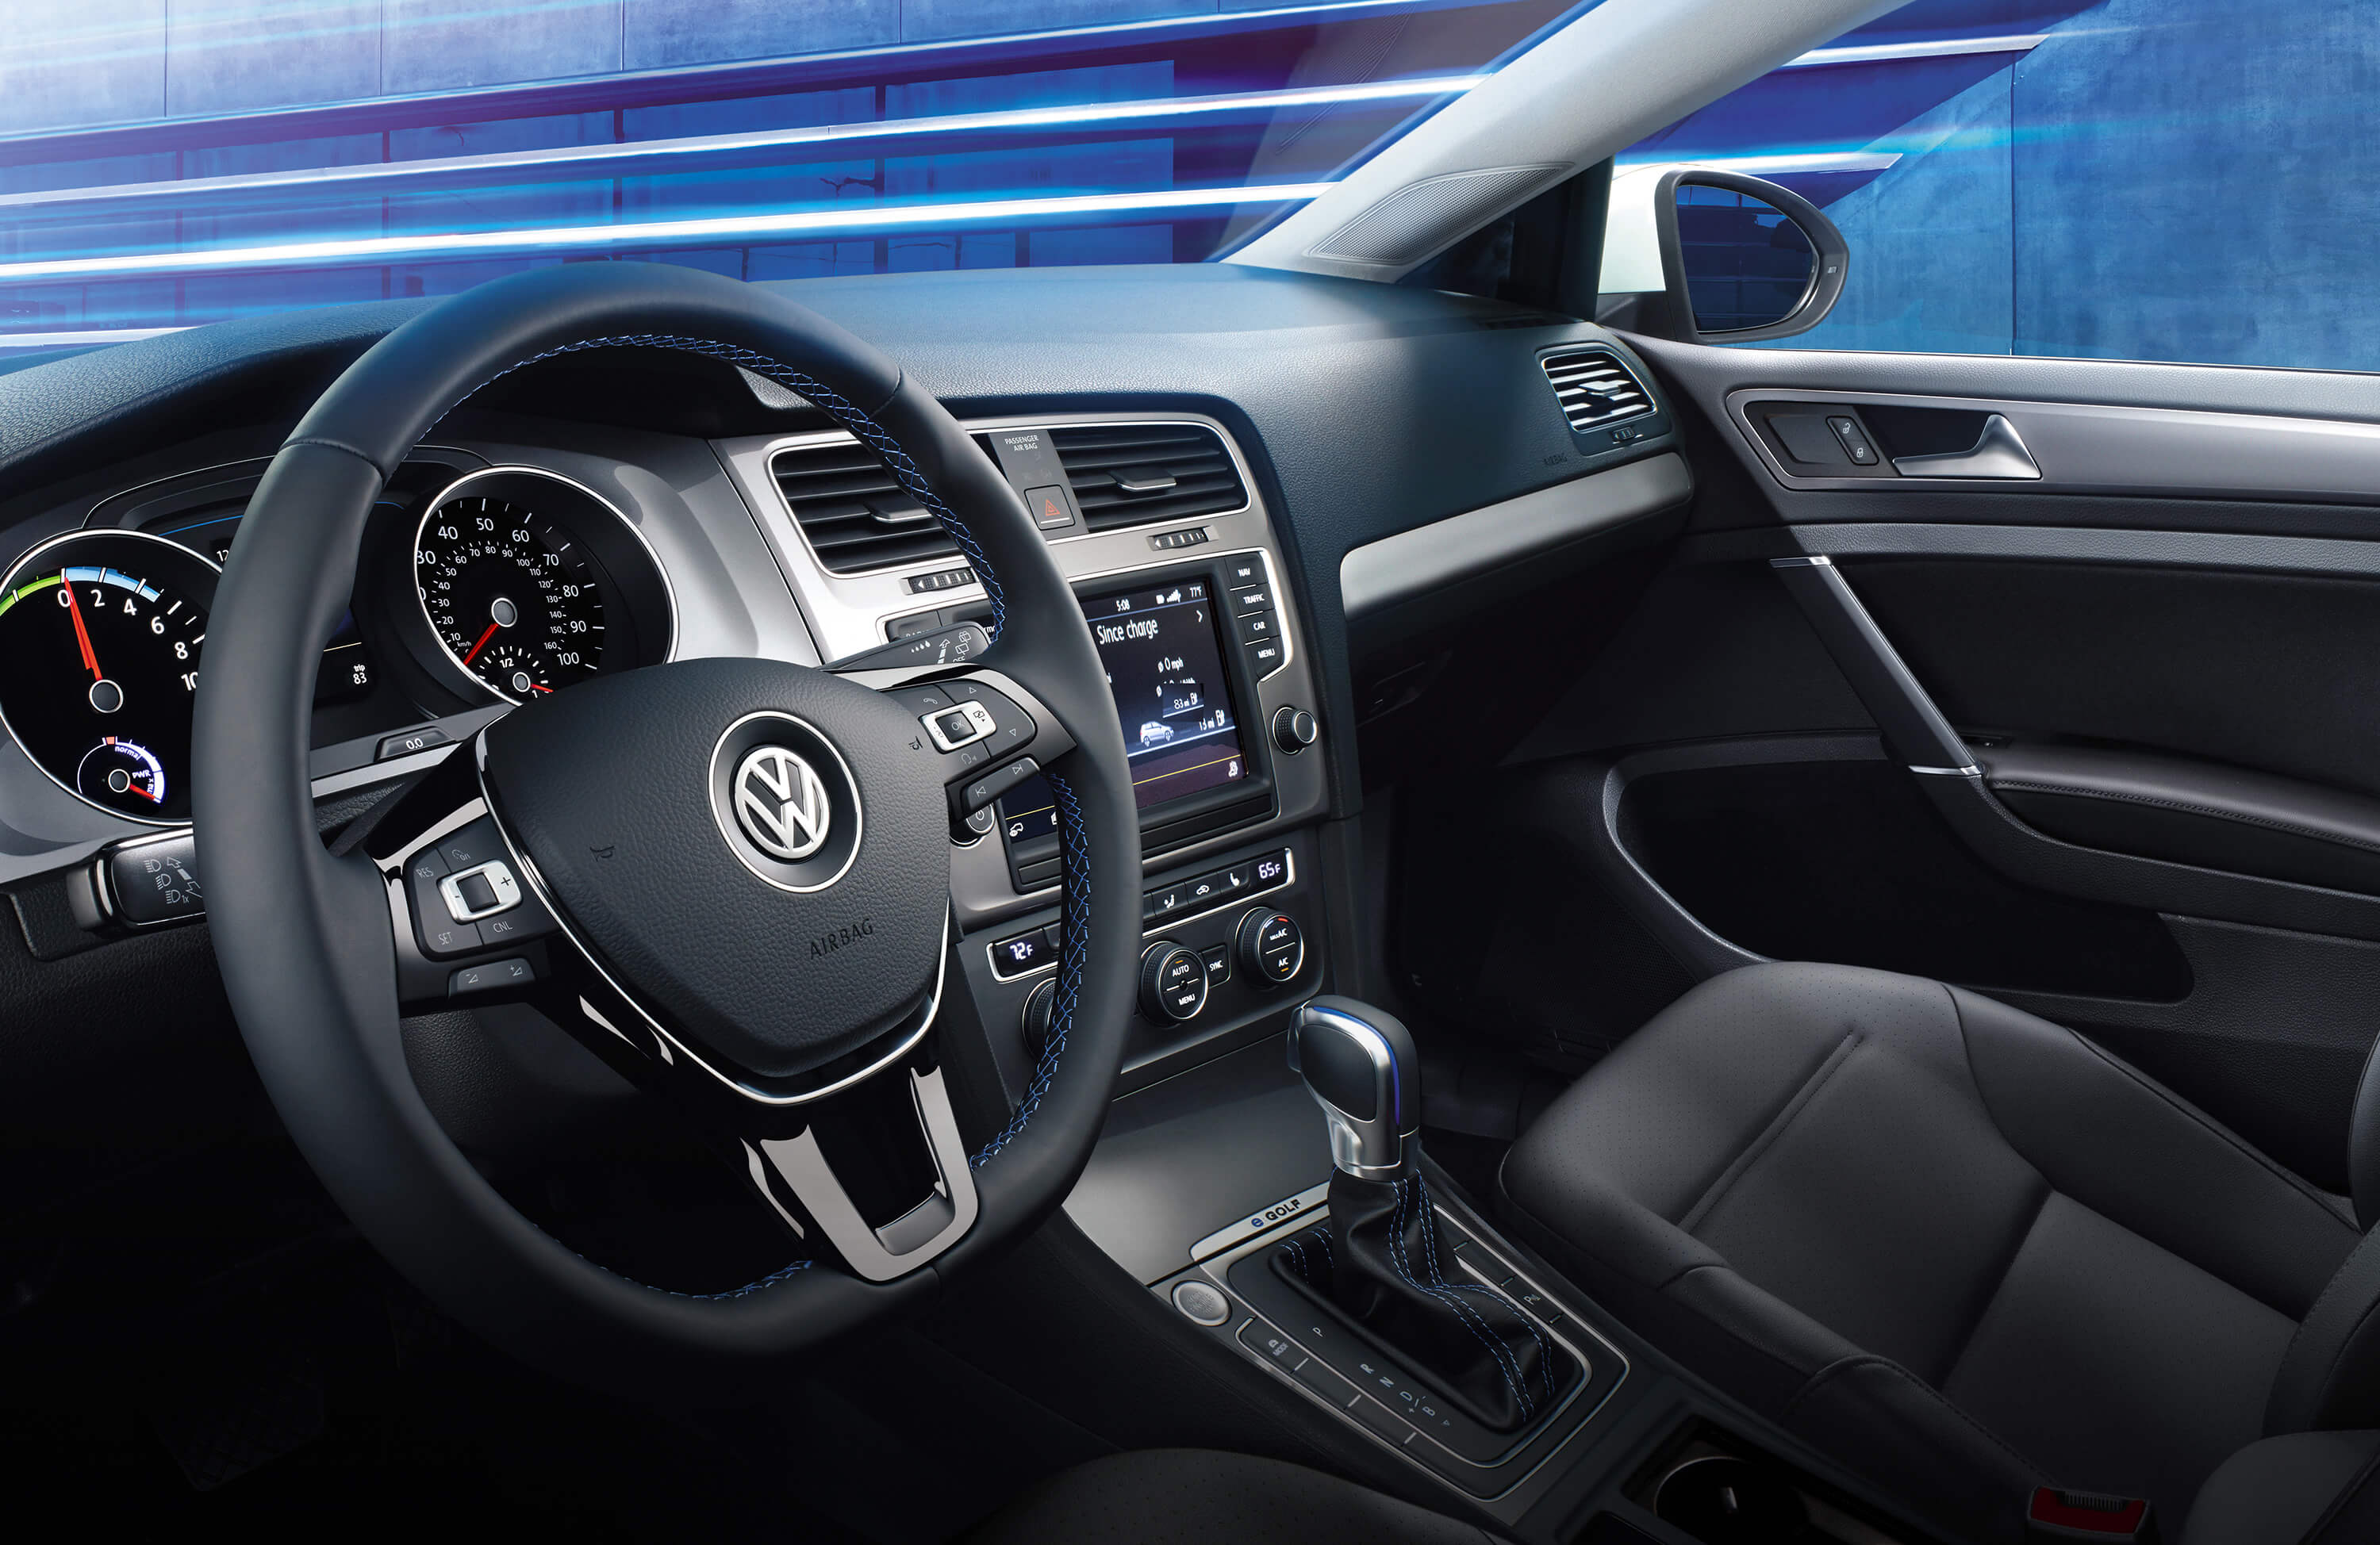 2016 Volkswagen E Golf Cockpit Interior (View 9 of 11)